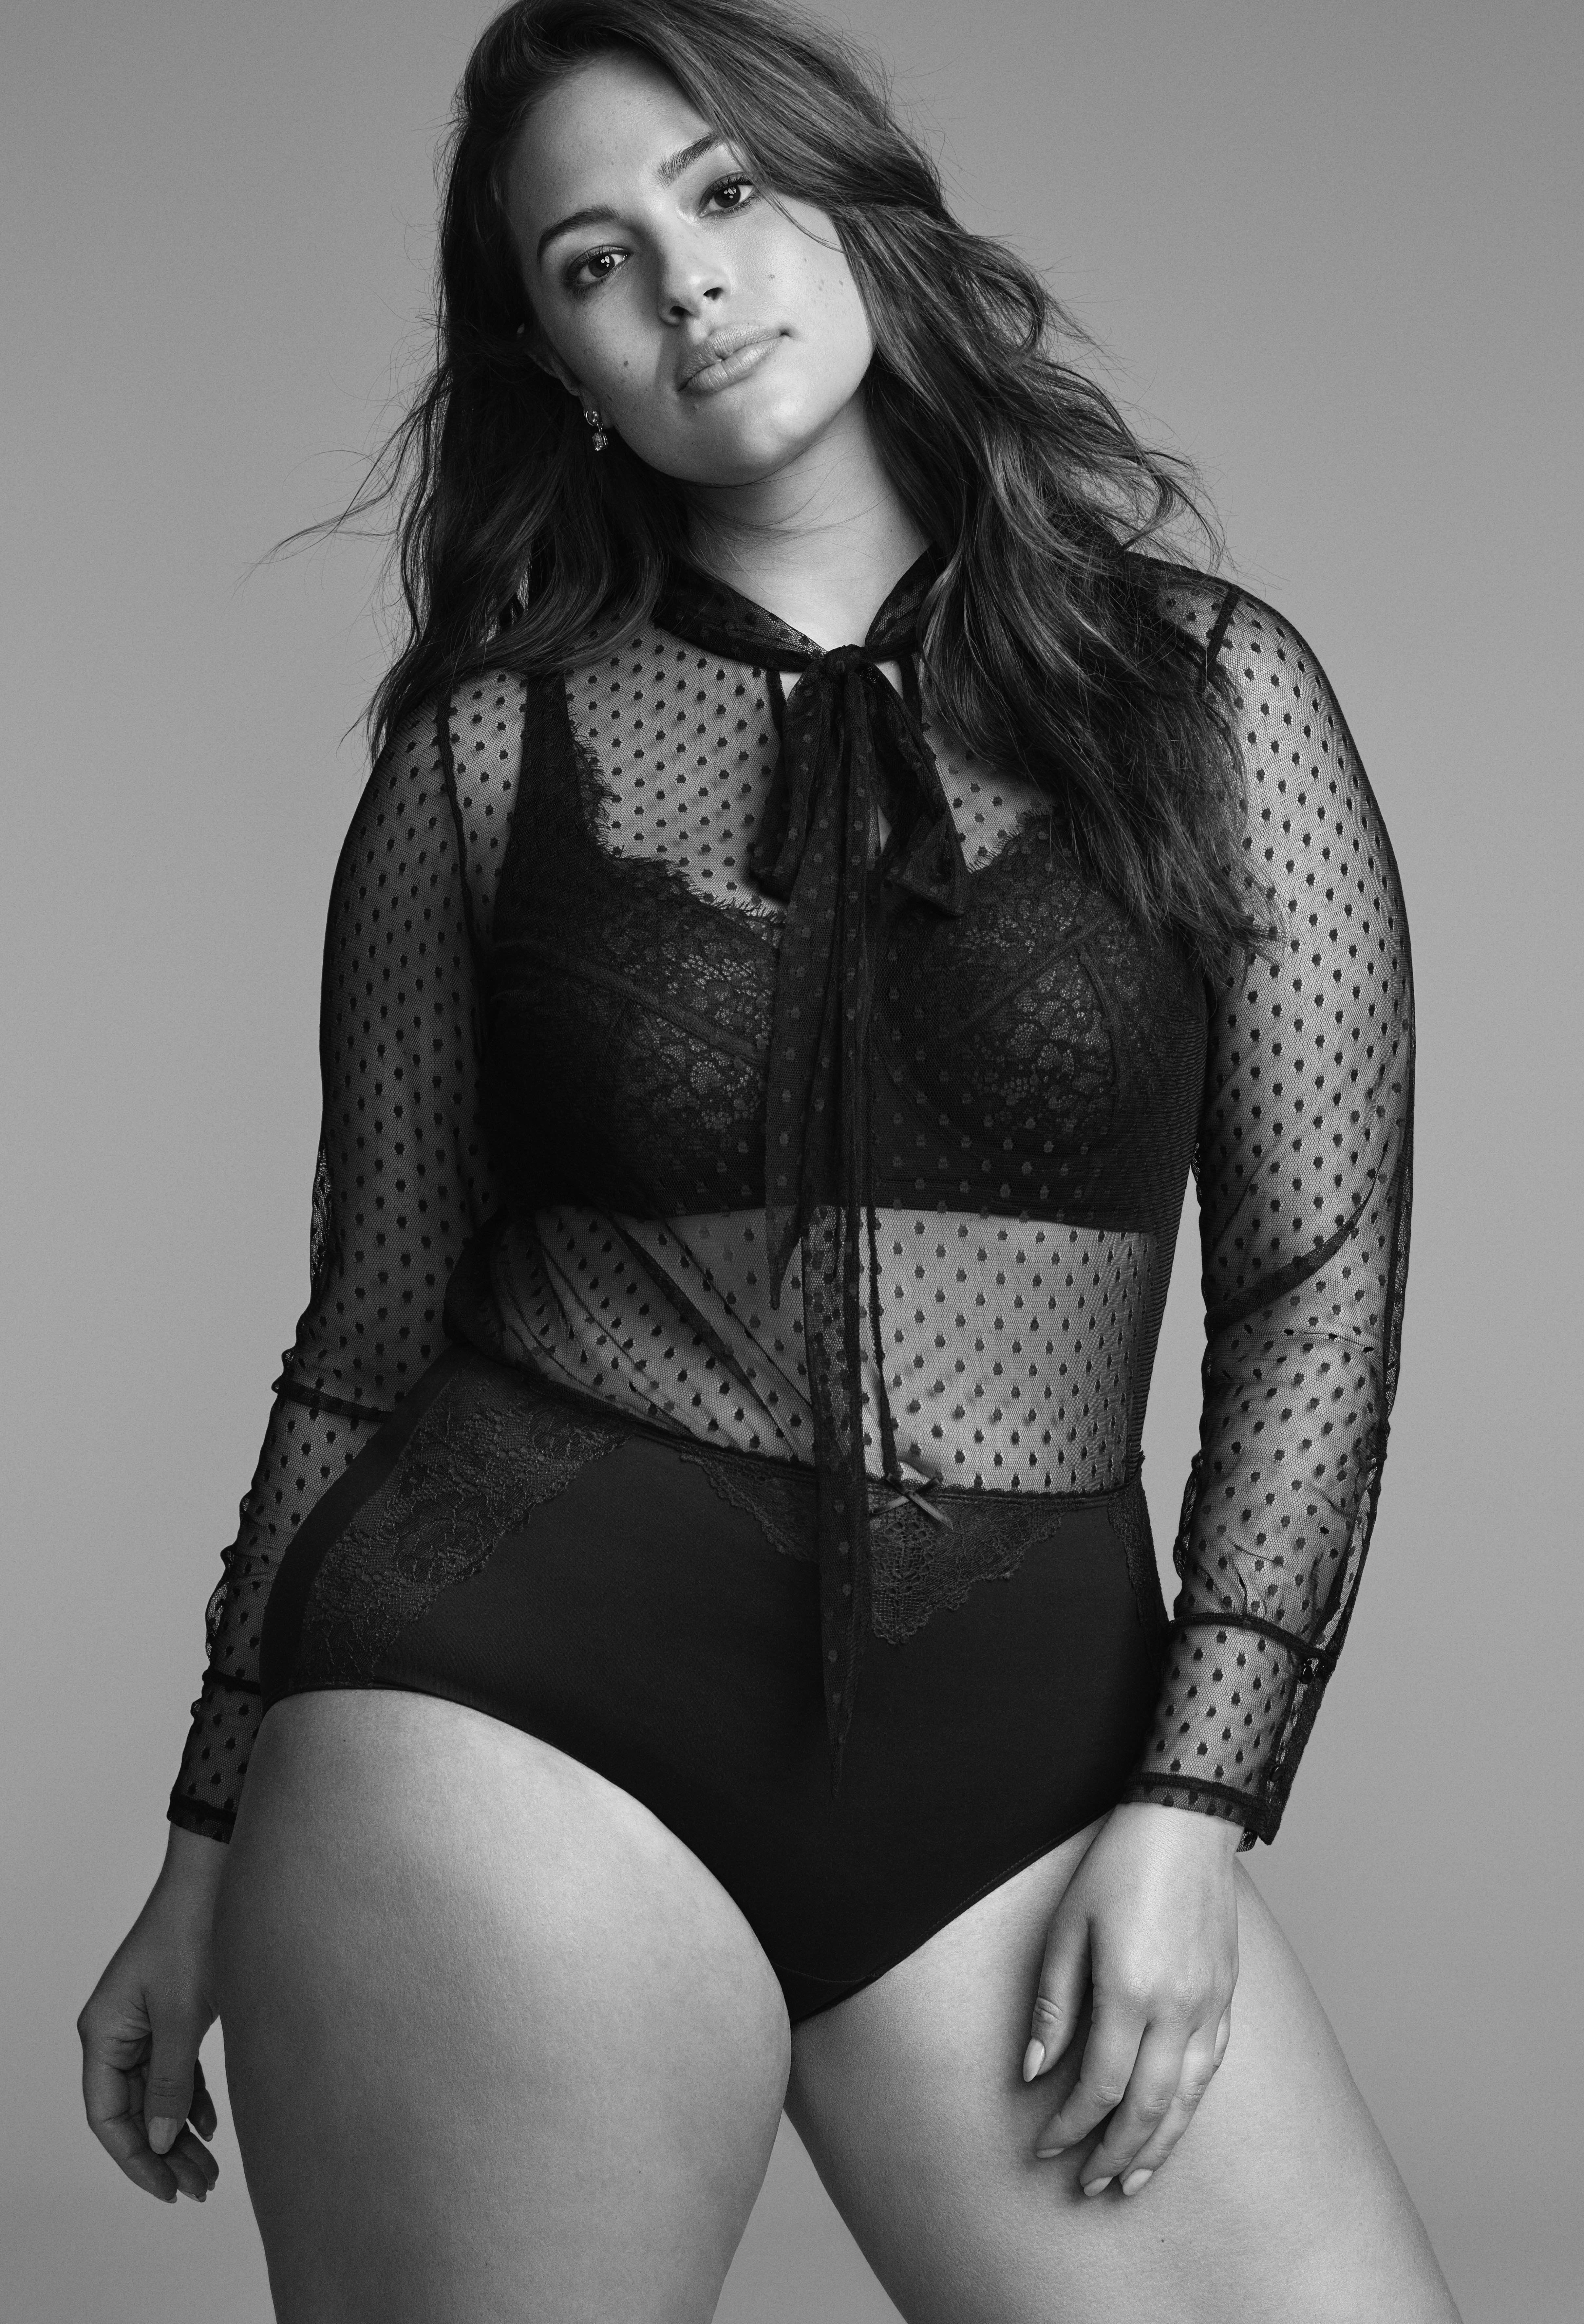 Lane bryant model ashley graham